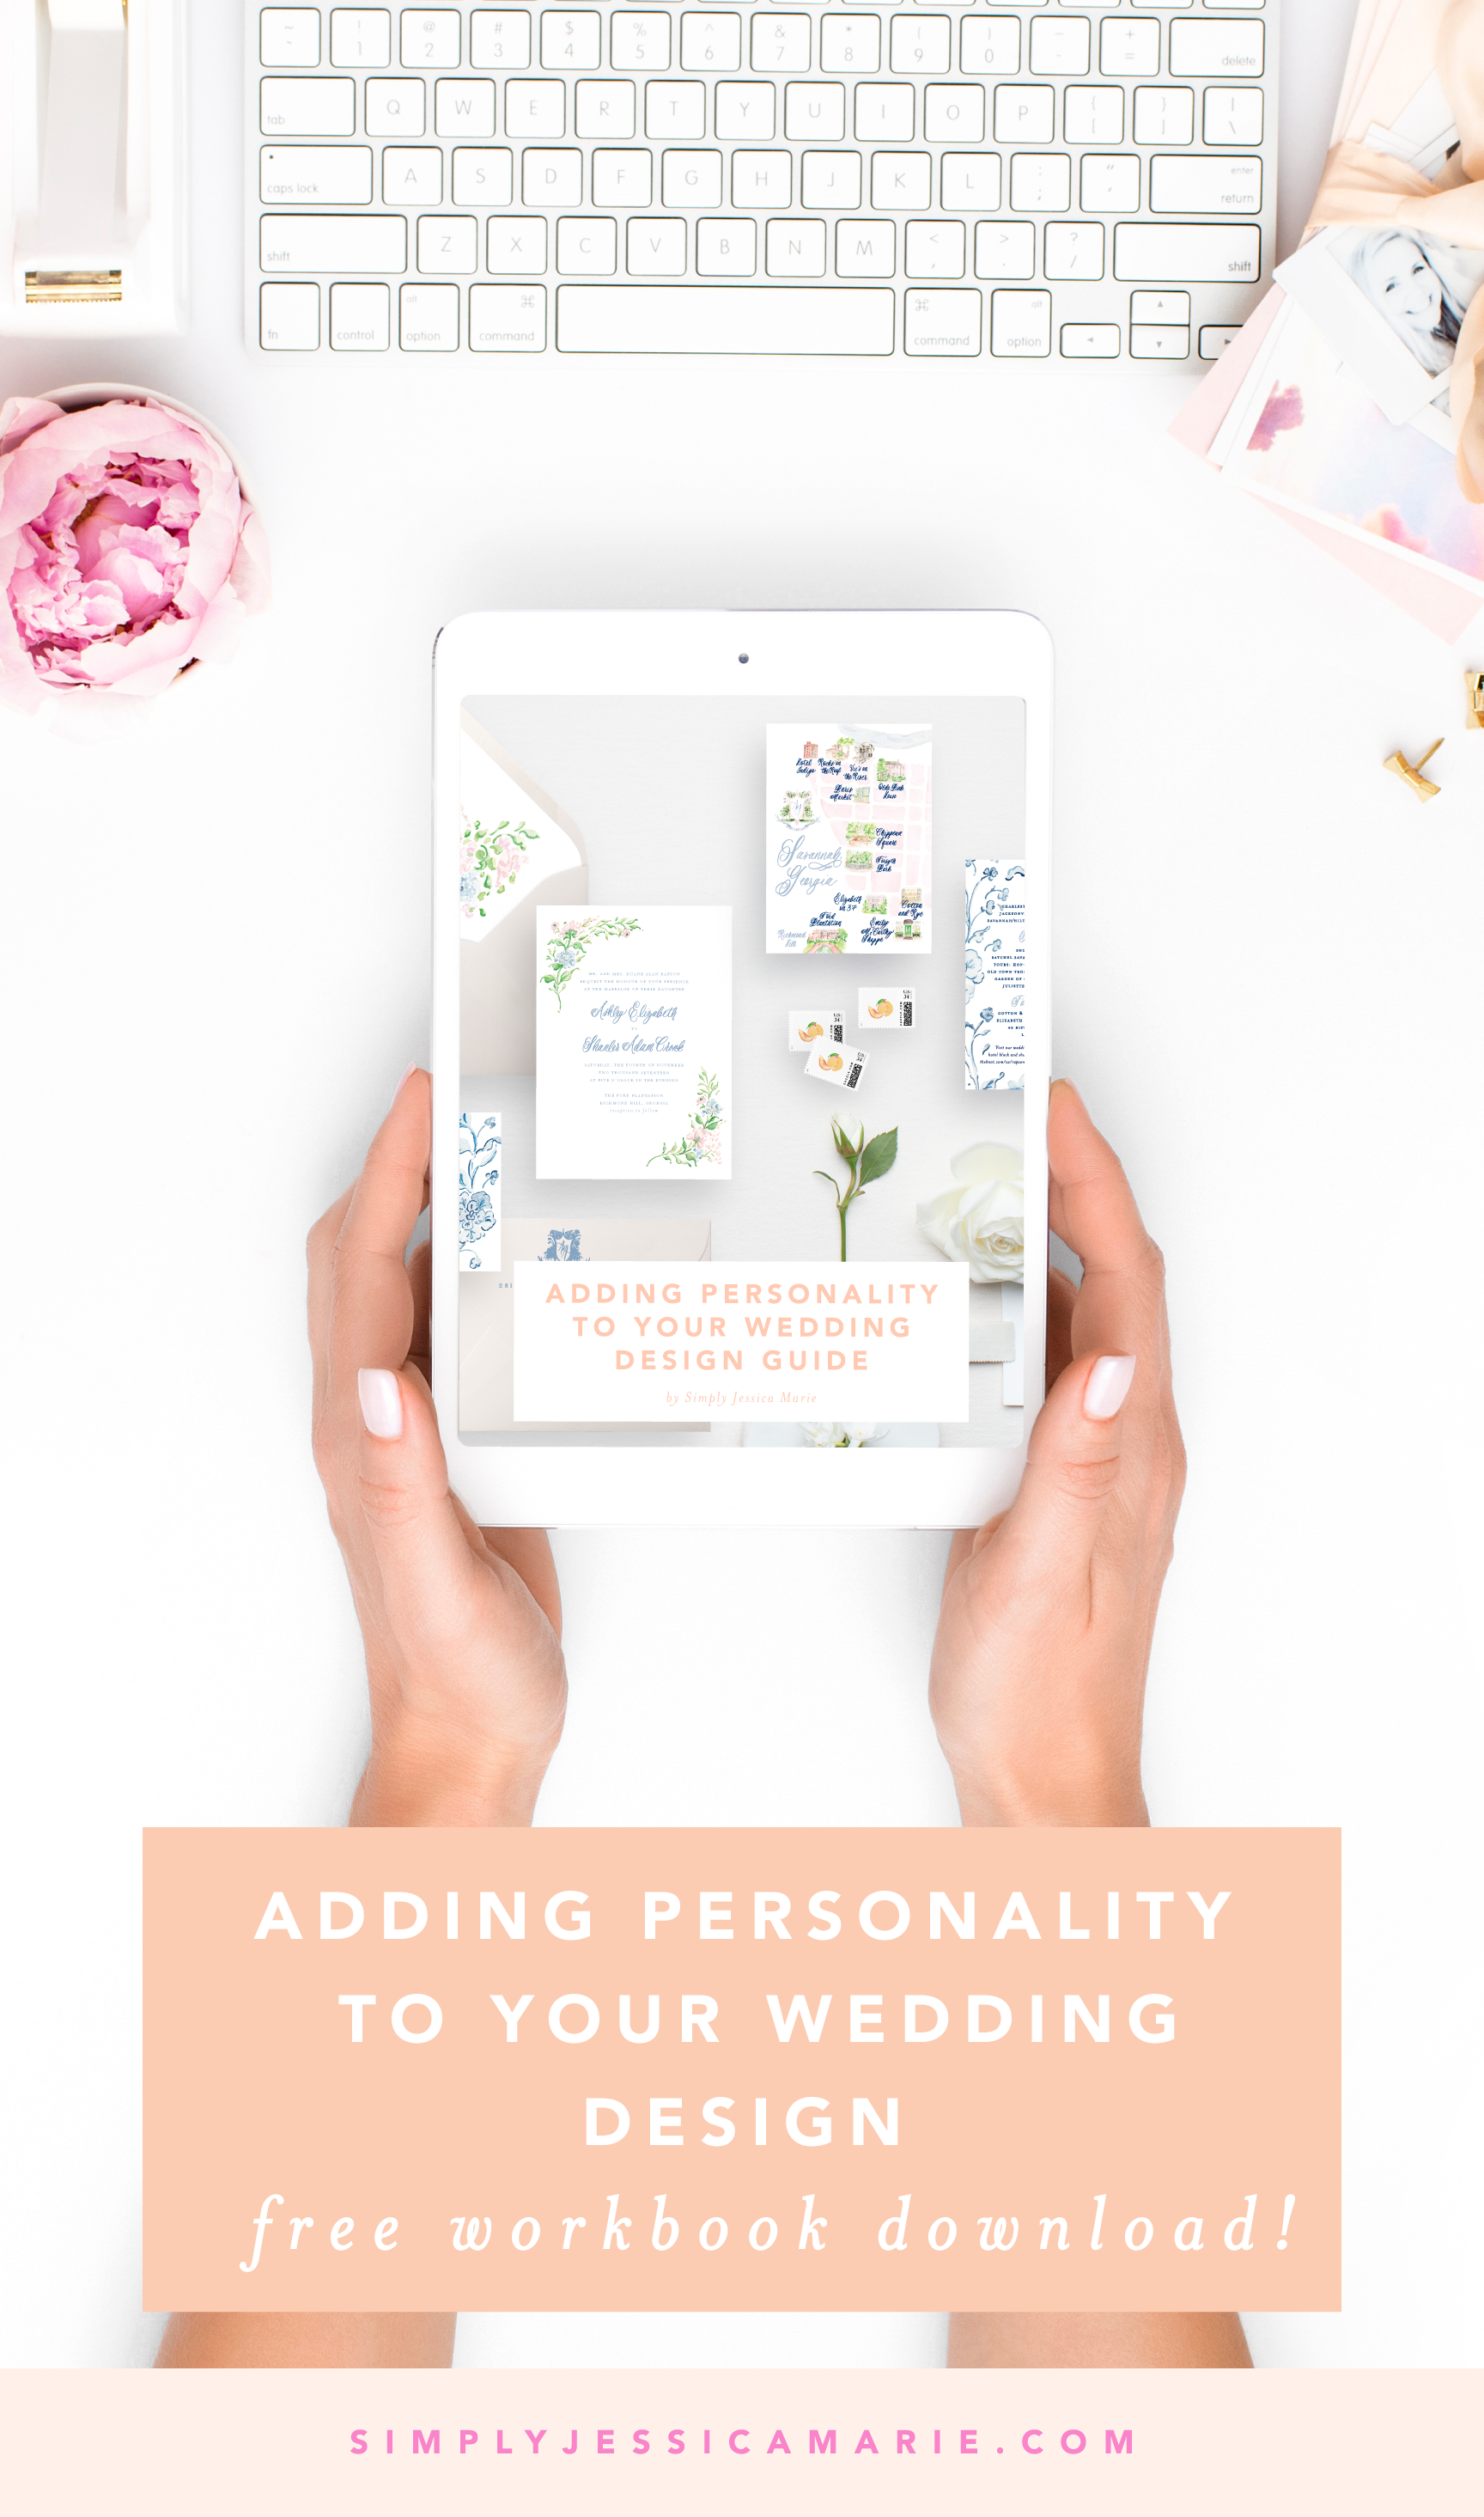 Adding Personality to Your Wedding Design | Free Workbook Download | Simply Jessica Marie.